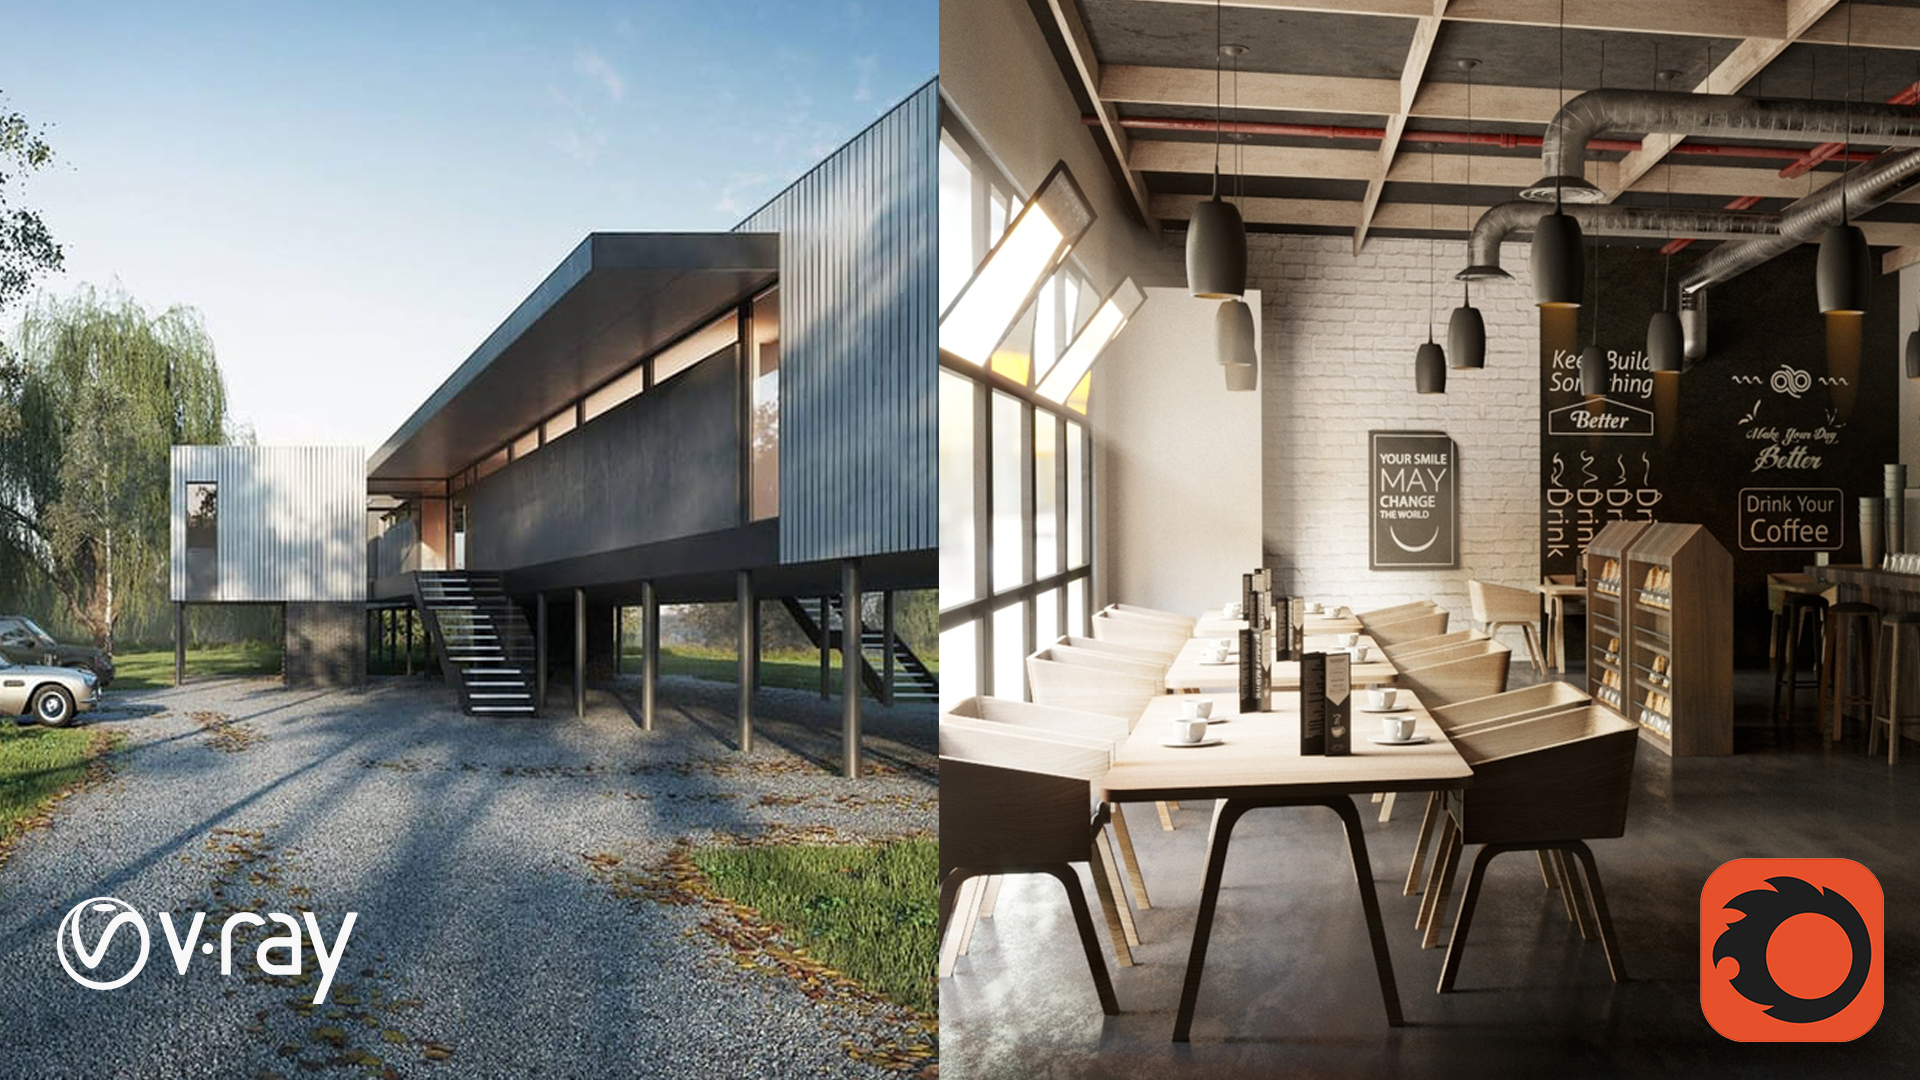 """Comparison between """"Vray Render Plugin"""" and """"Corona Renderer Plugin"""" and which the best for interiors and exterior's"""